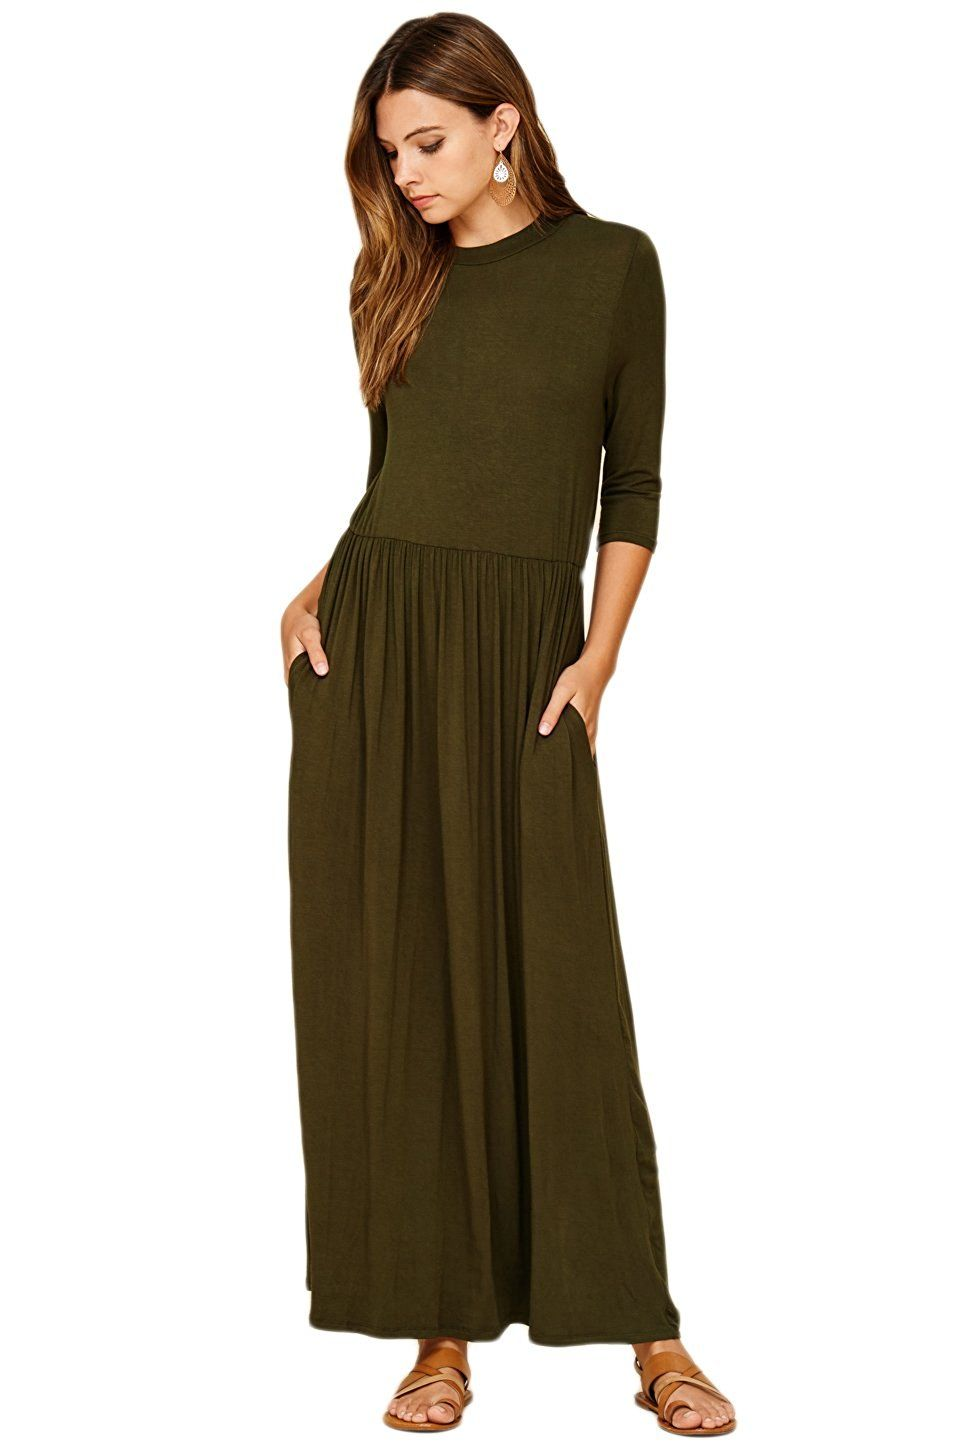 Annabelle womenus sleeve long maxi dresses with side pockets